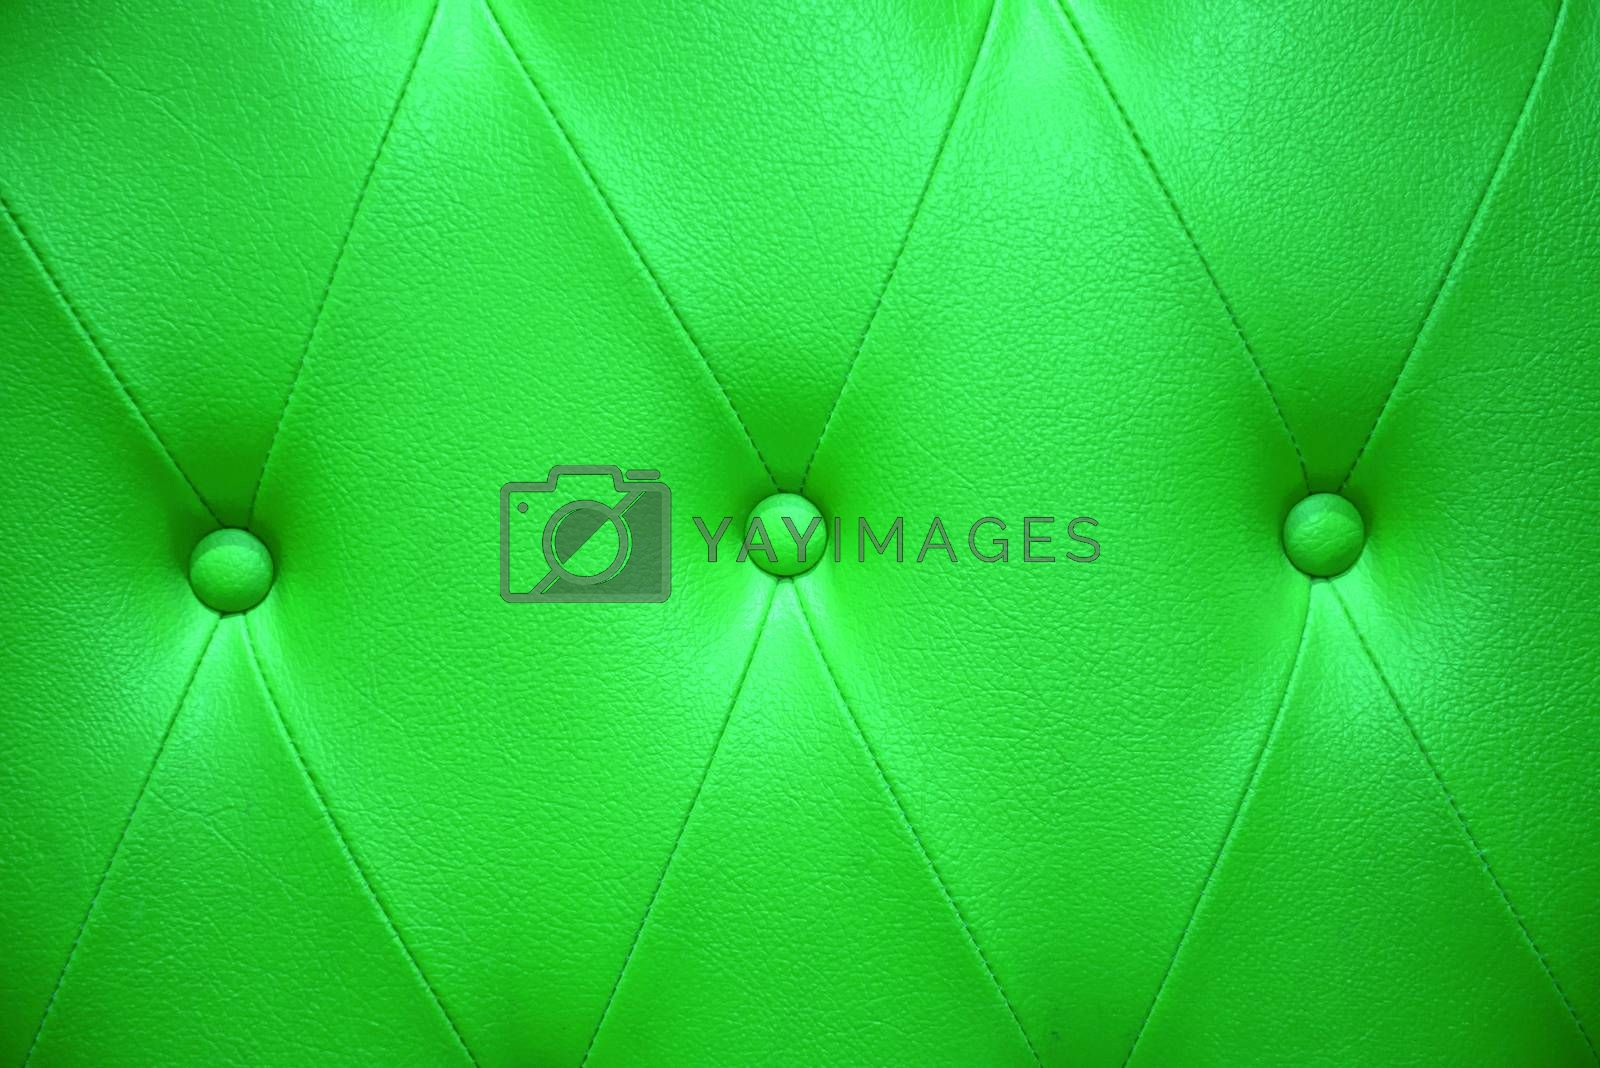 Emerald green color of upholstery leather pattern as background by jakgree